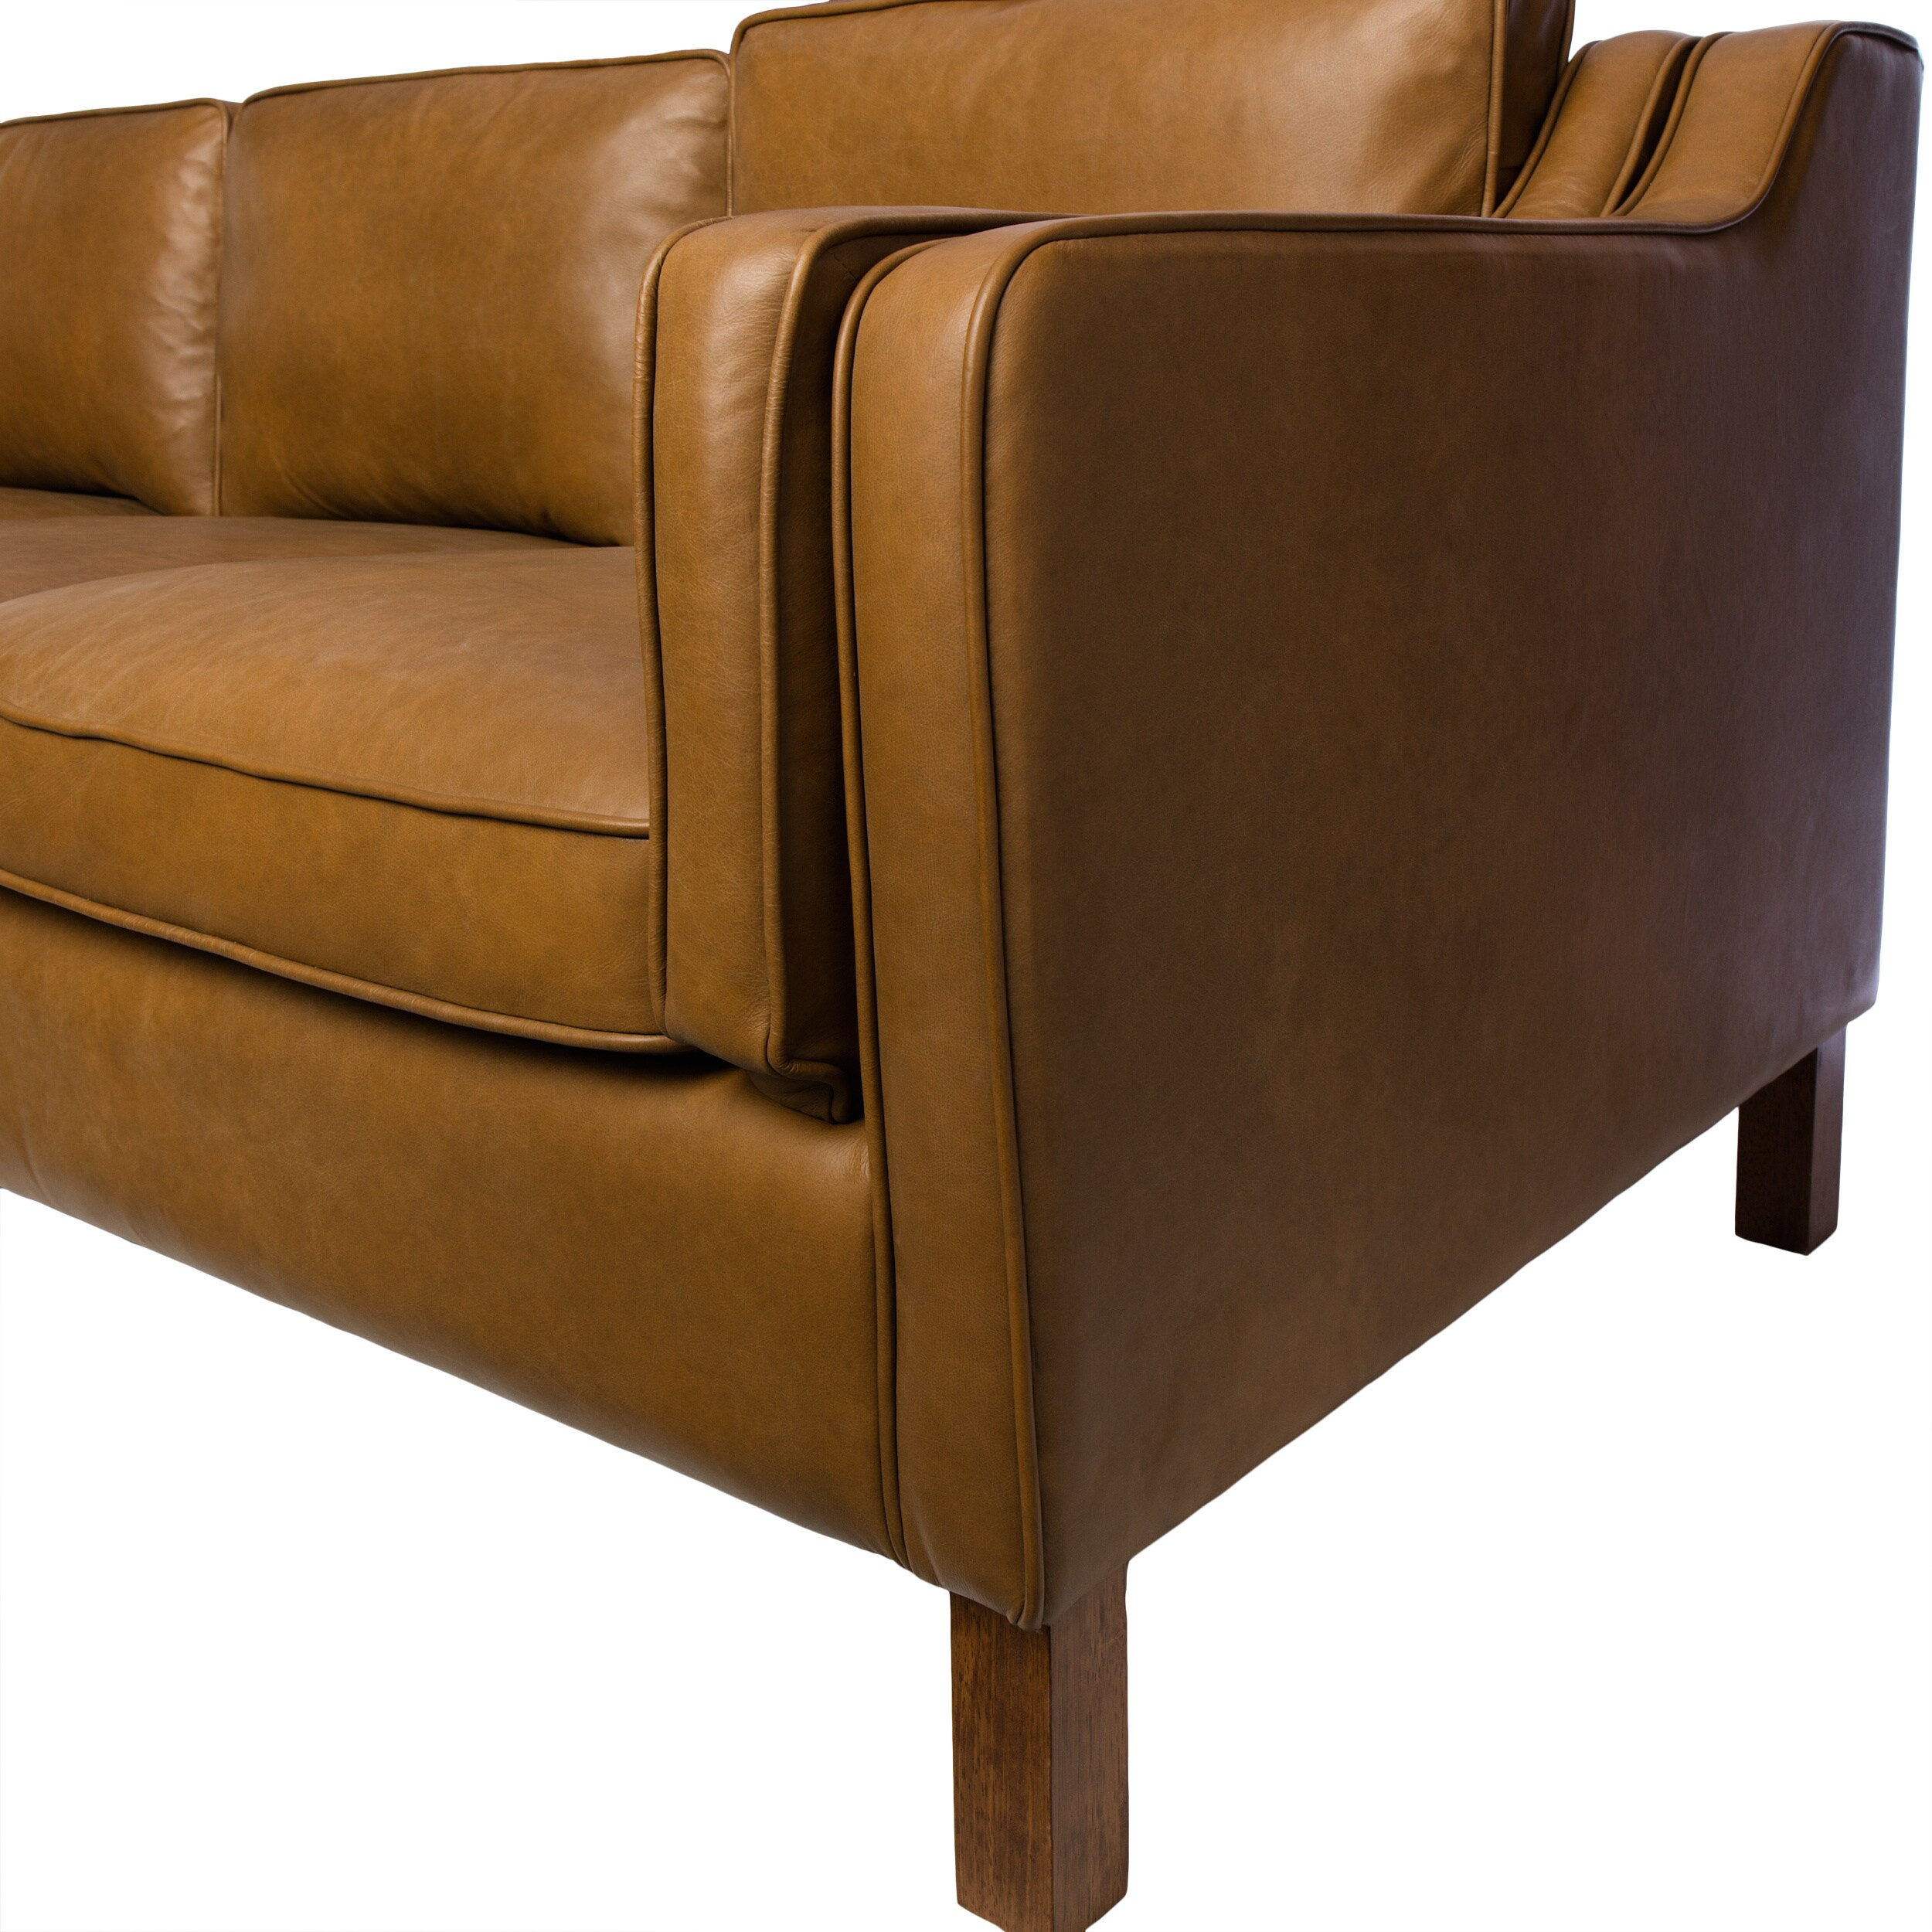 Canape 86 Inch Oxford Honey Leather Sofa   Free Shipping Today    Overstock.com   16070447